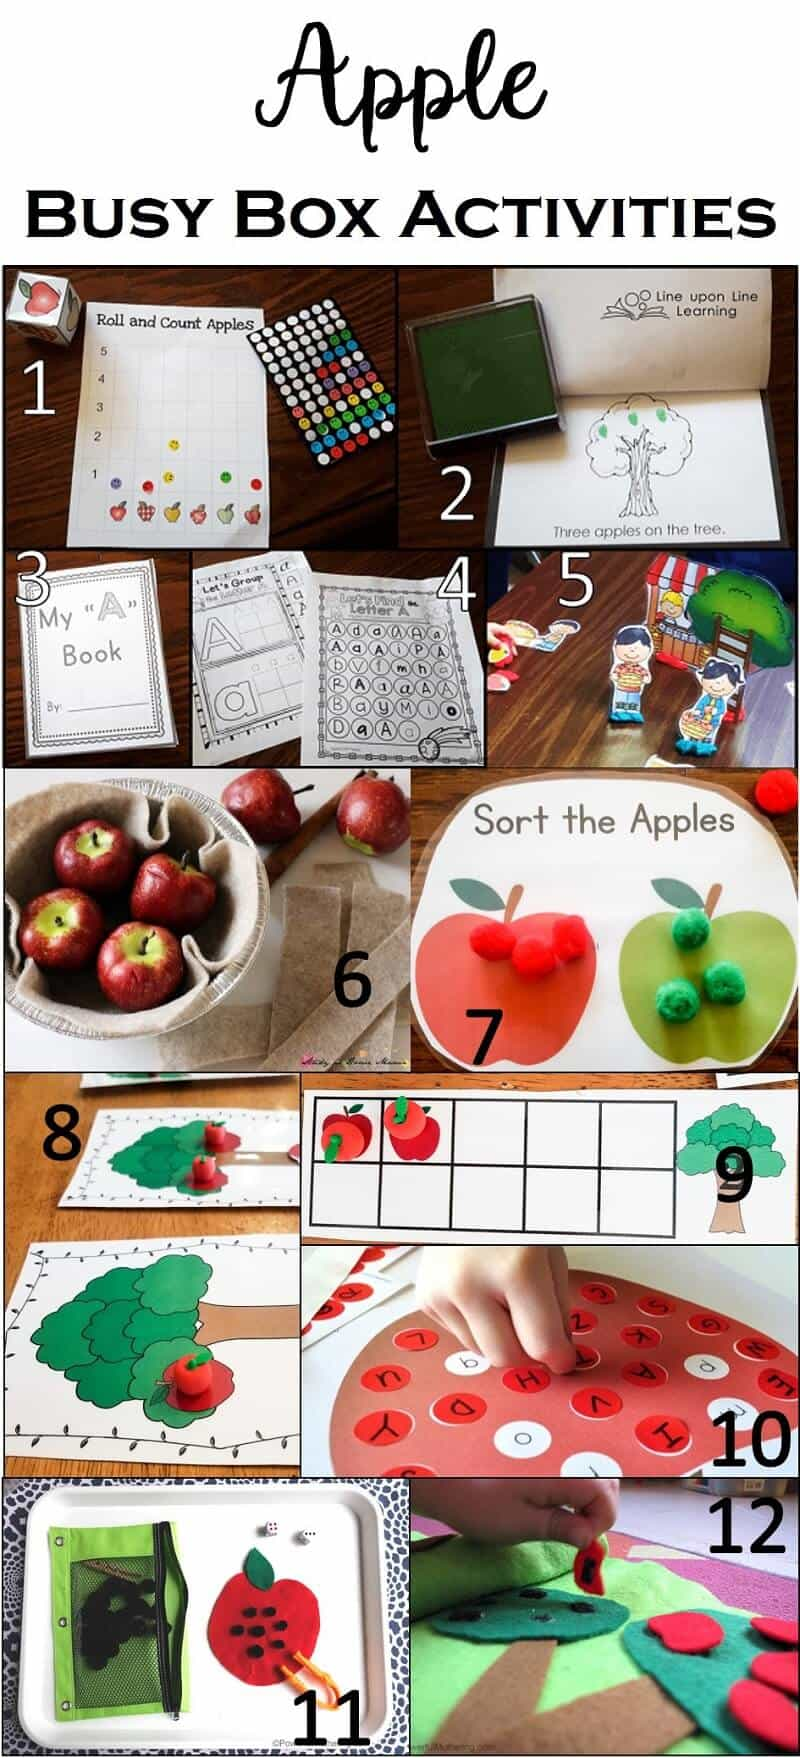 These take-along simple activities provide educational and entertaining apple activities just perfect for our autumn busy box.